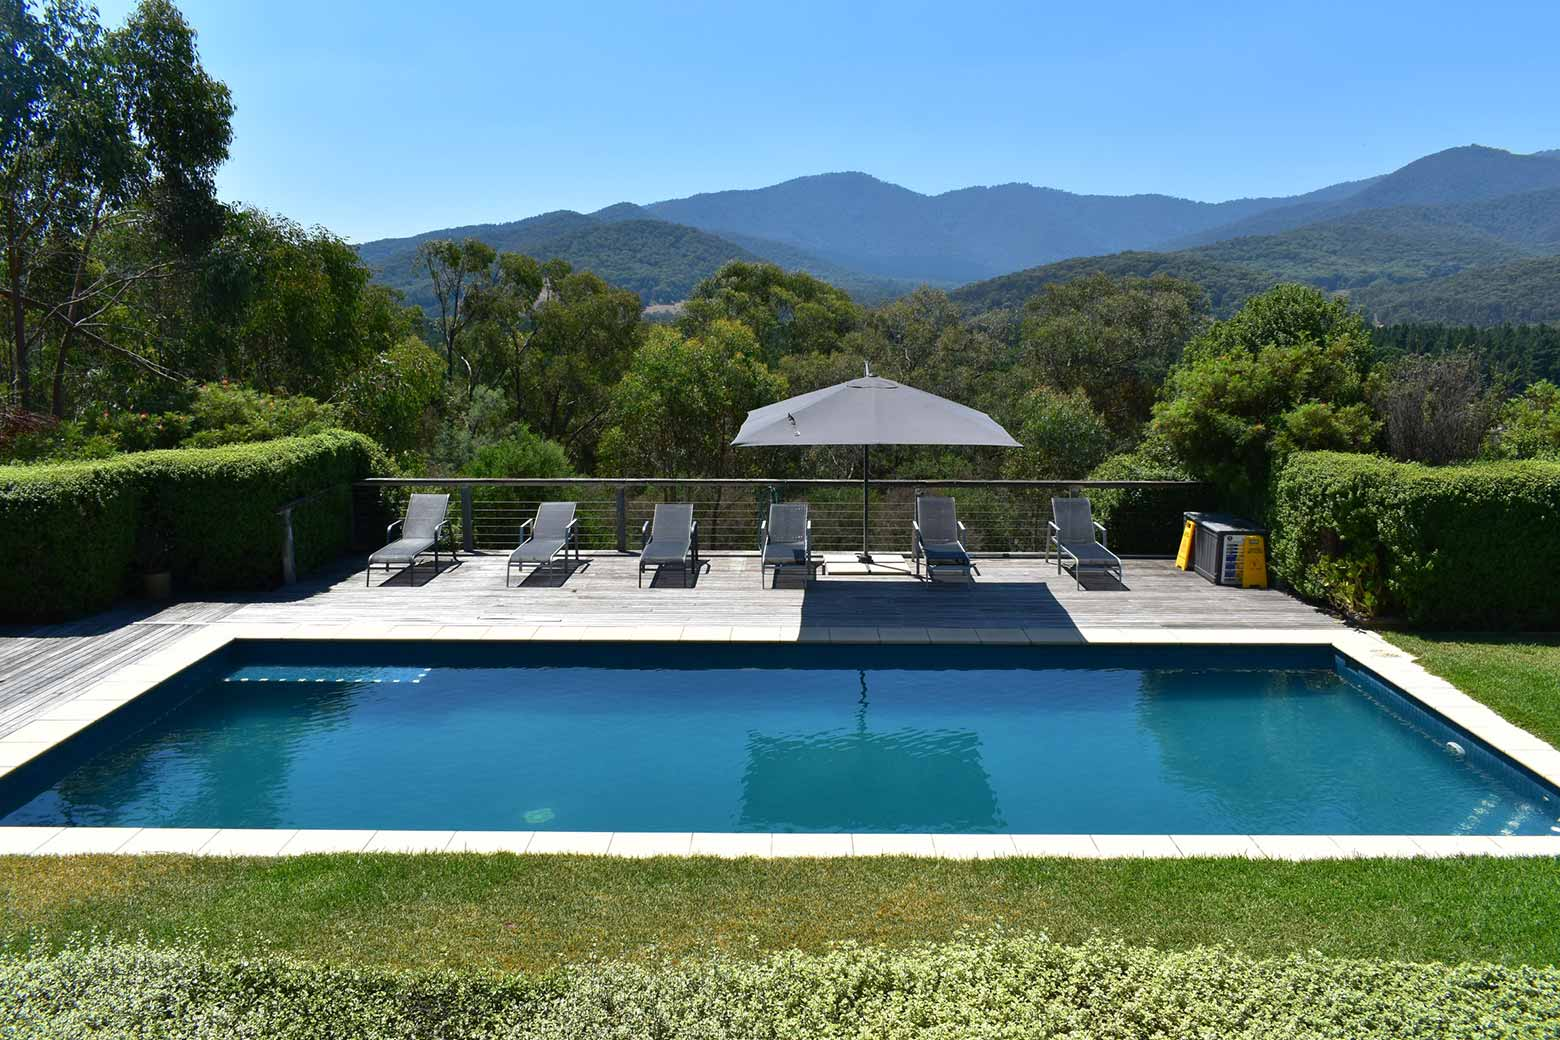 Soul-Full-Winter-Retreat---Yoga-Corner-2019-215-Mt-Buffalo-Pool.jpg